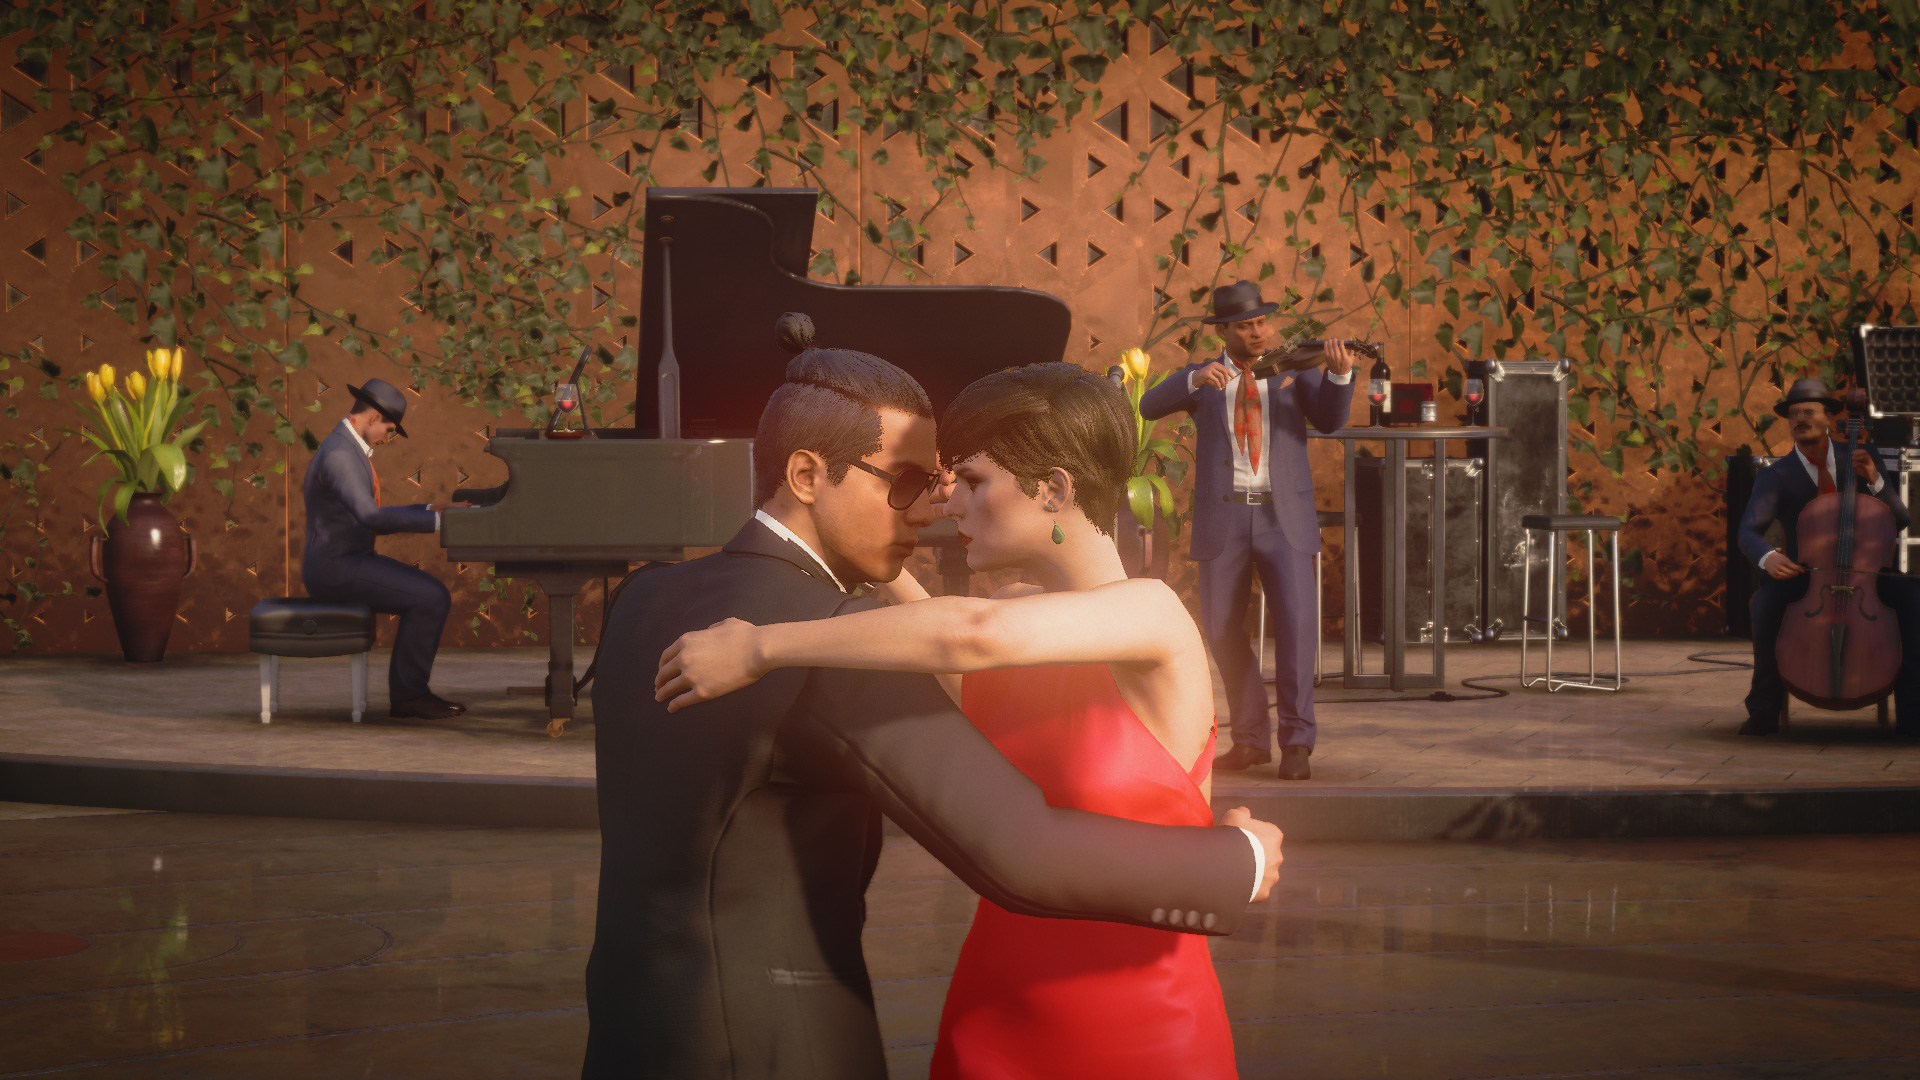 a man wearing a suit and sunglasses dances a tango with a woman in a red dress in Hitman 3